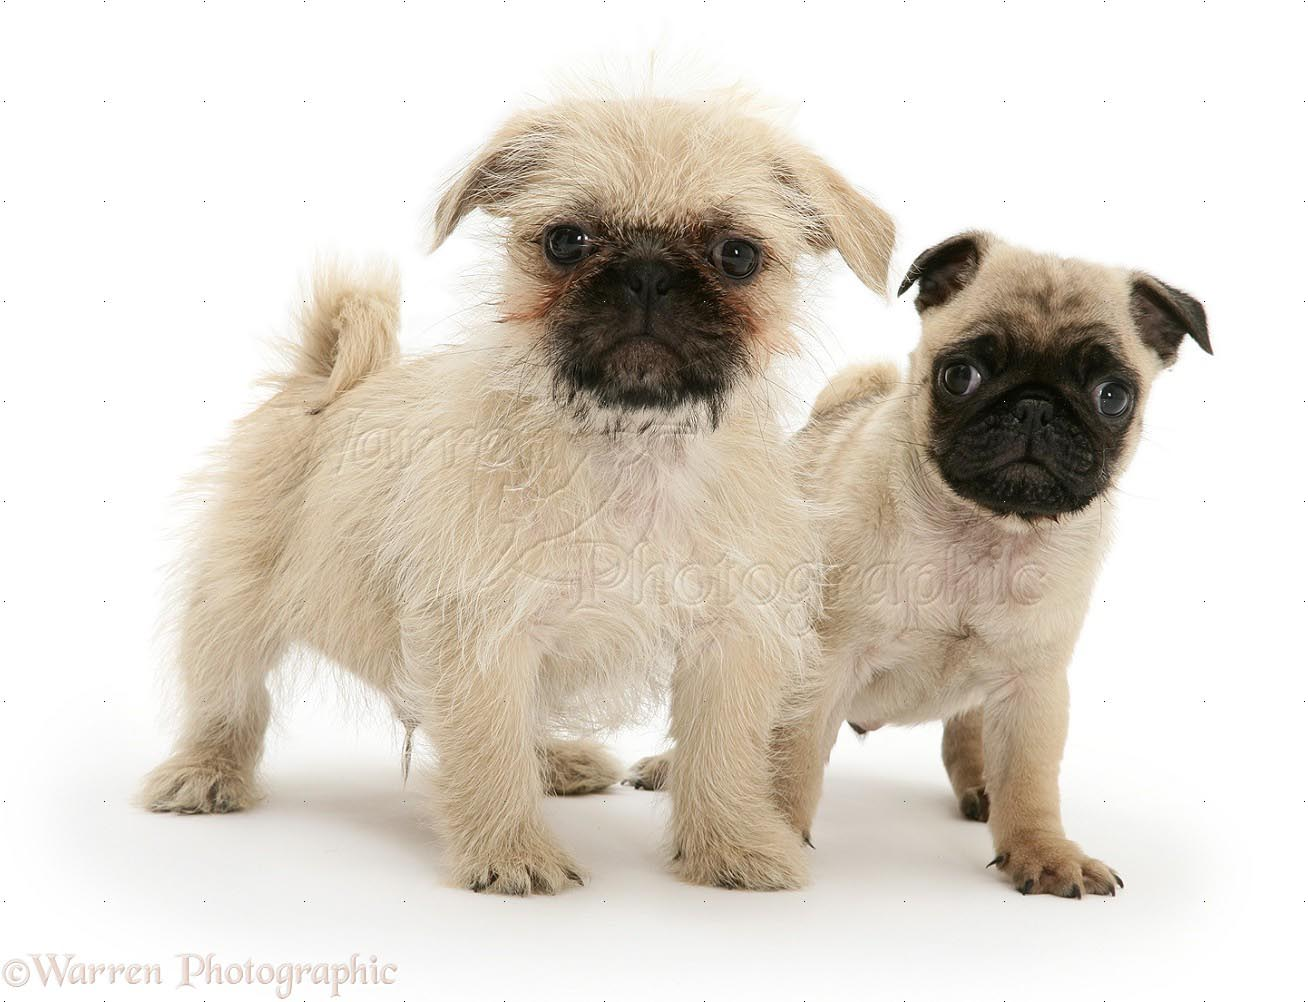 Pug Cross Shih Tzu Dogs Dog Breed Information